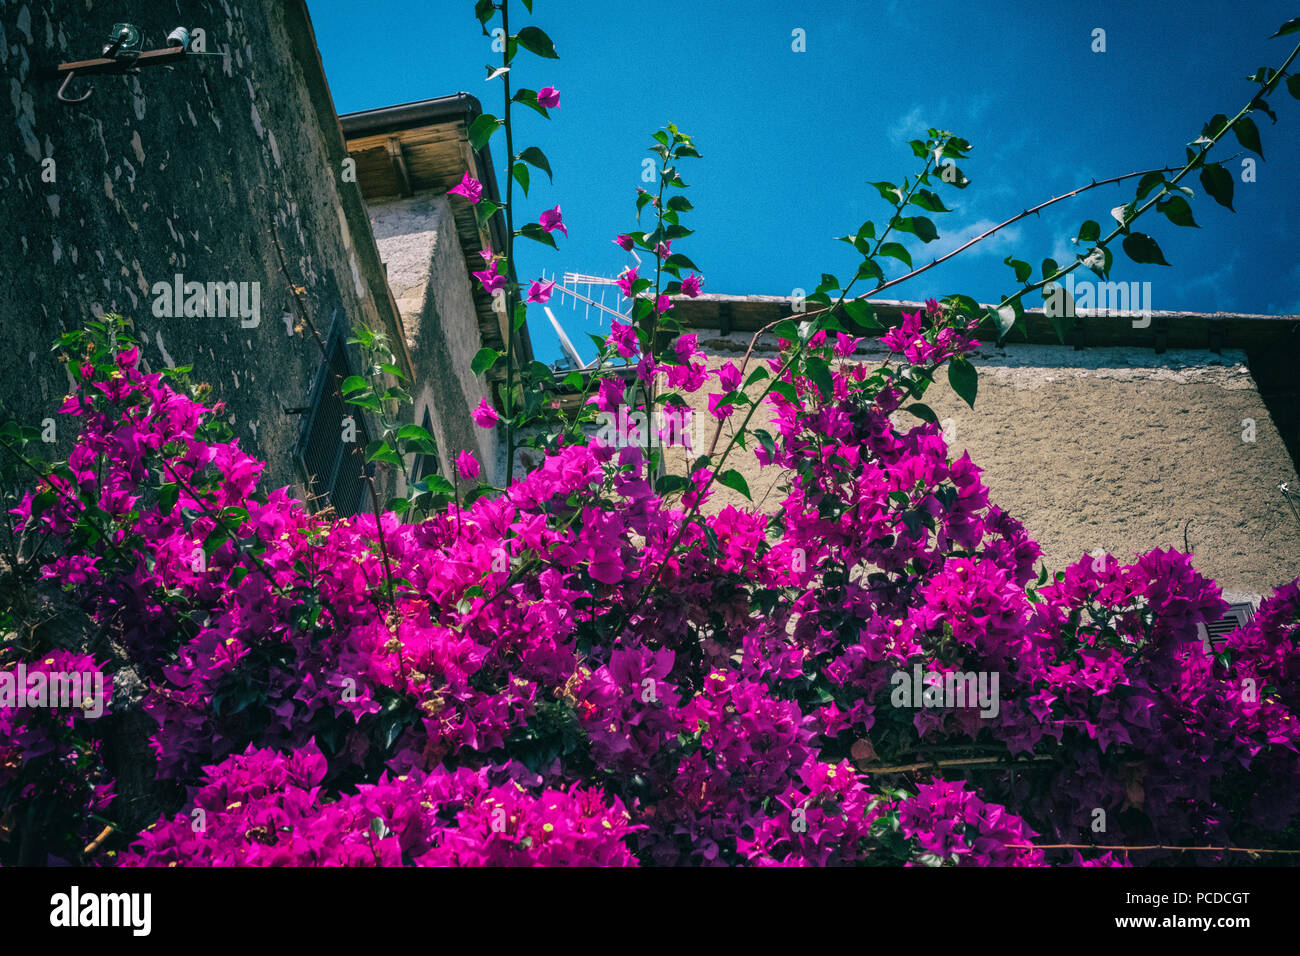 Bougainvillea Wallpaper Beautiful Bougainvillea Flower With Stone Walls Of Houses Of A